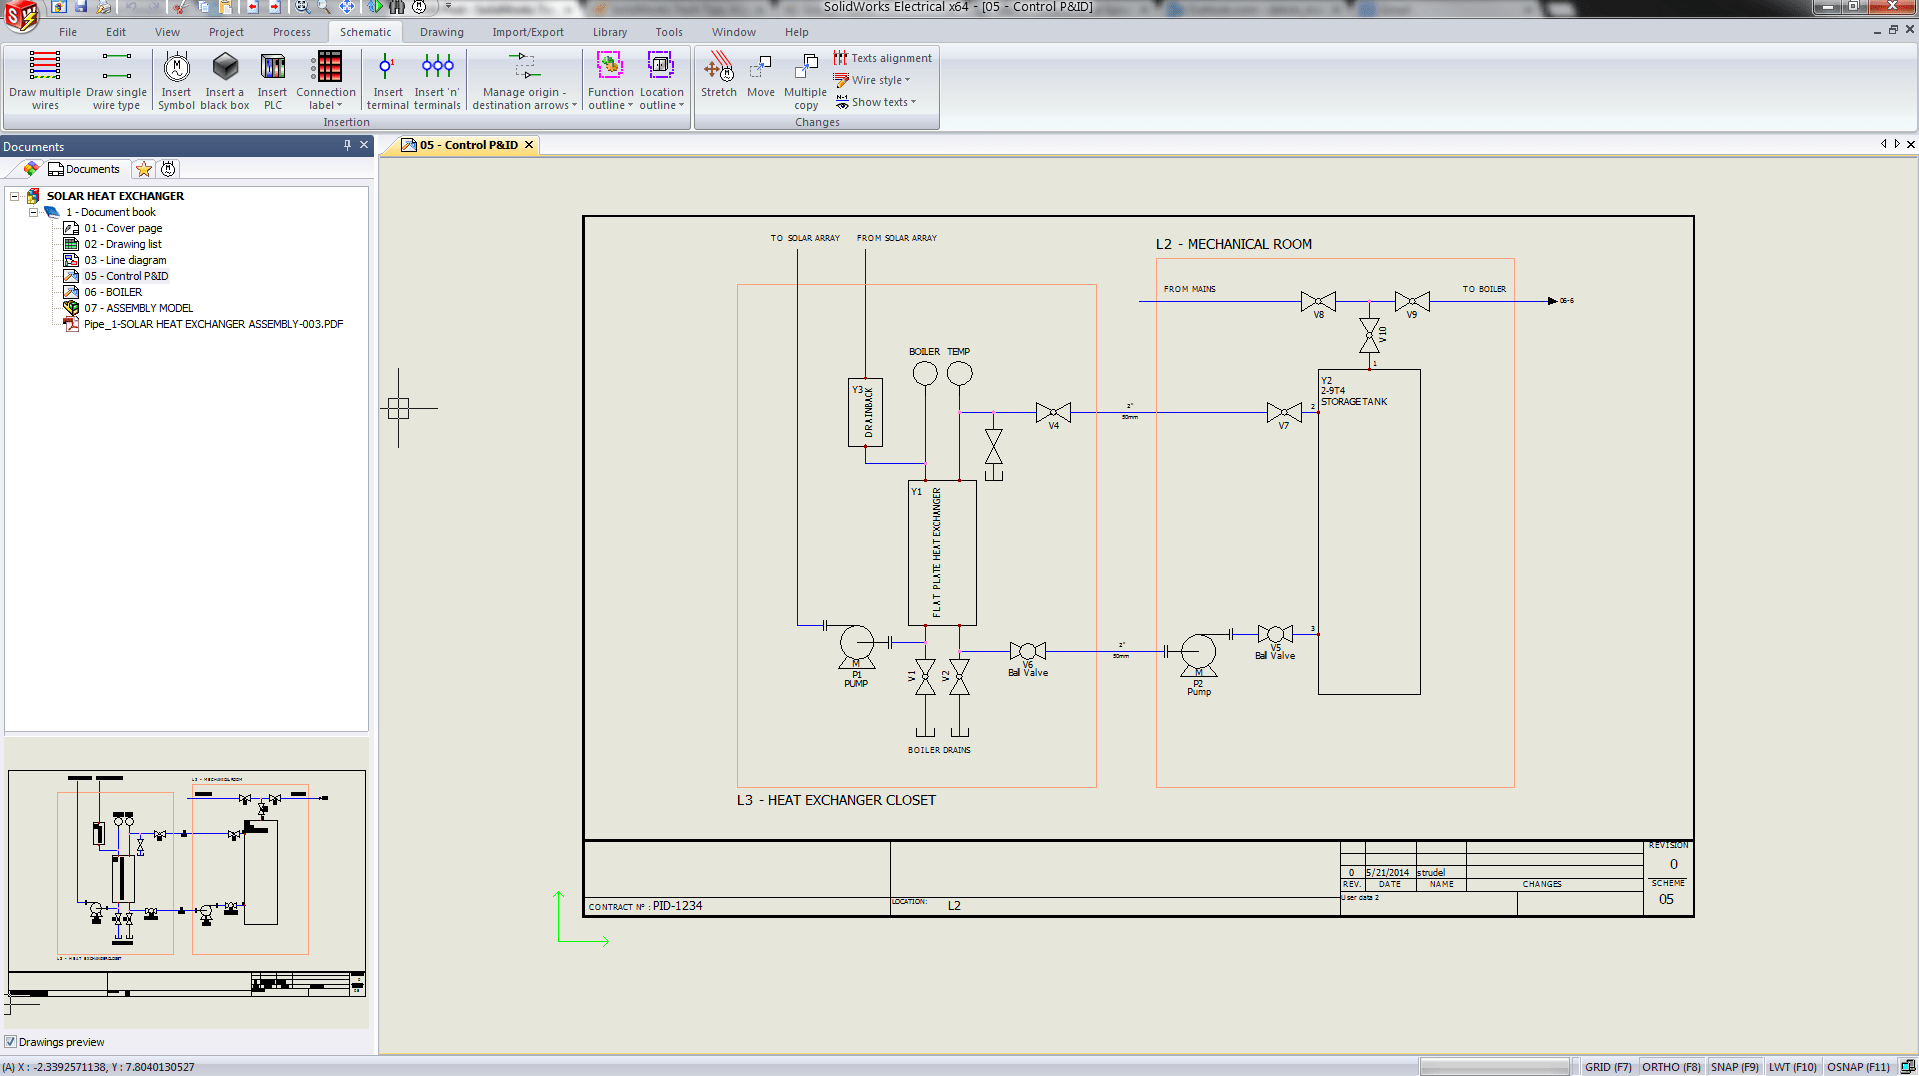 hight resolution of solidworks electrical p id 2d diagram solidworks electrical piping instrumentation